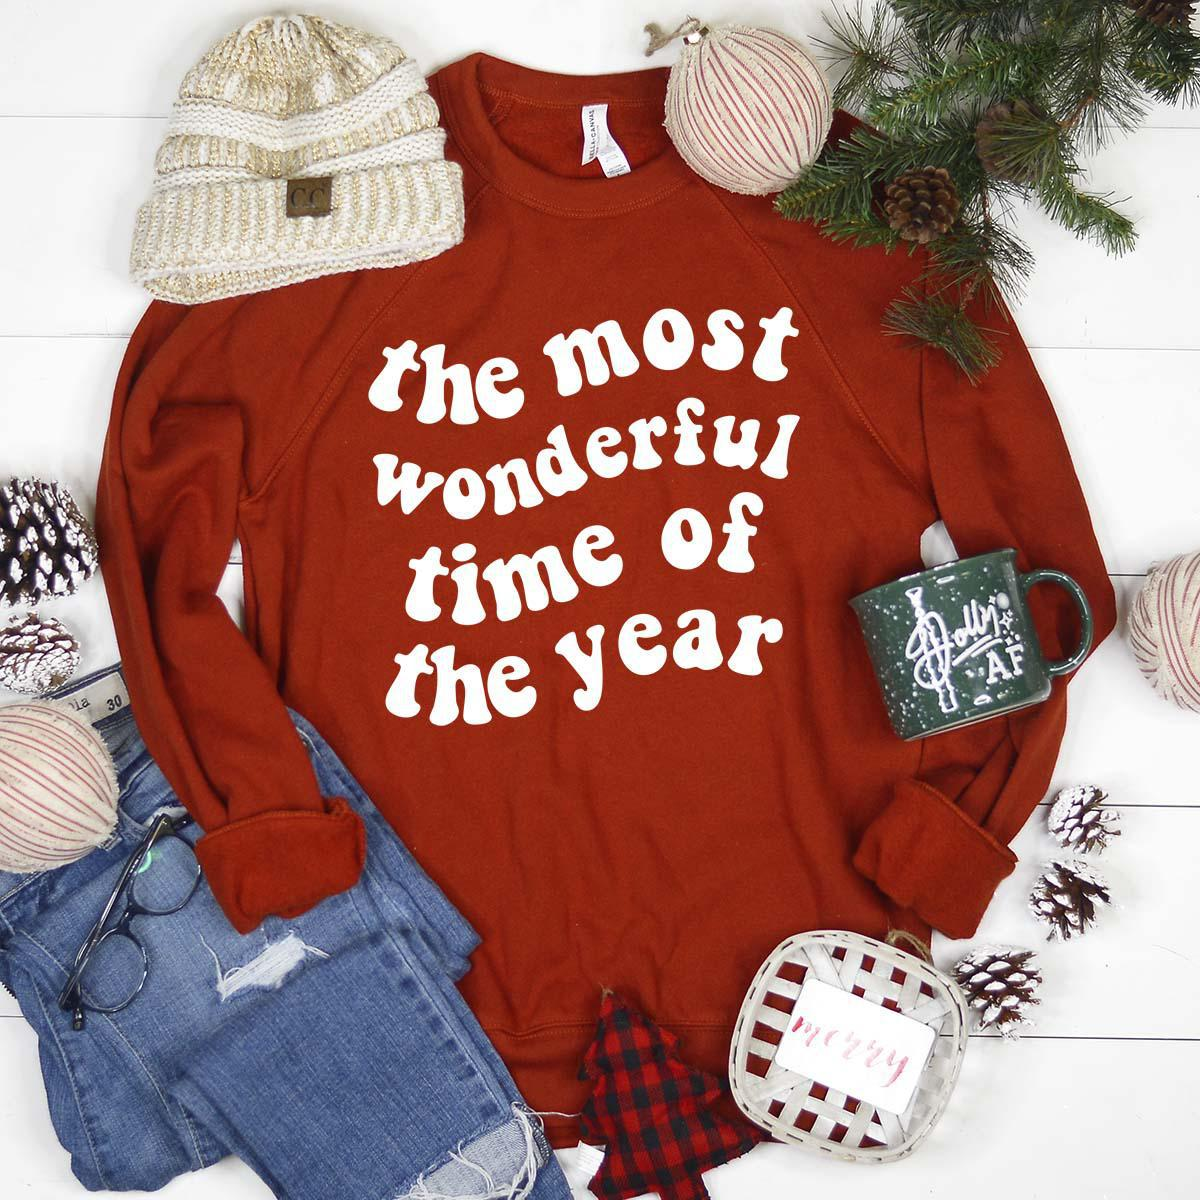 The Most Wonderful Time of the Year Red Sweatshirt, Christmas Sweatshirt